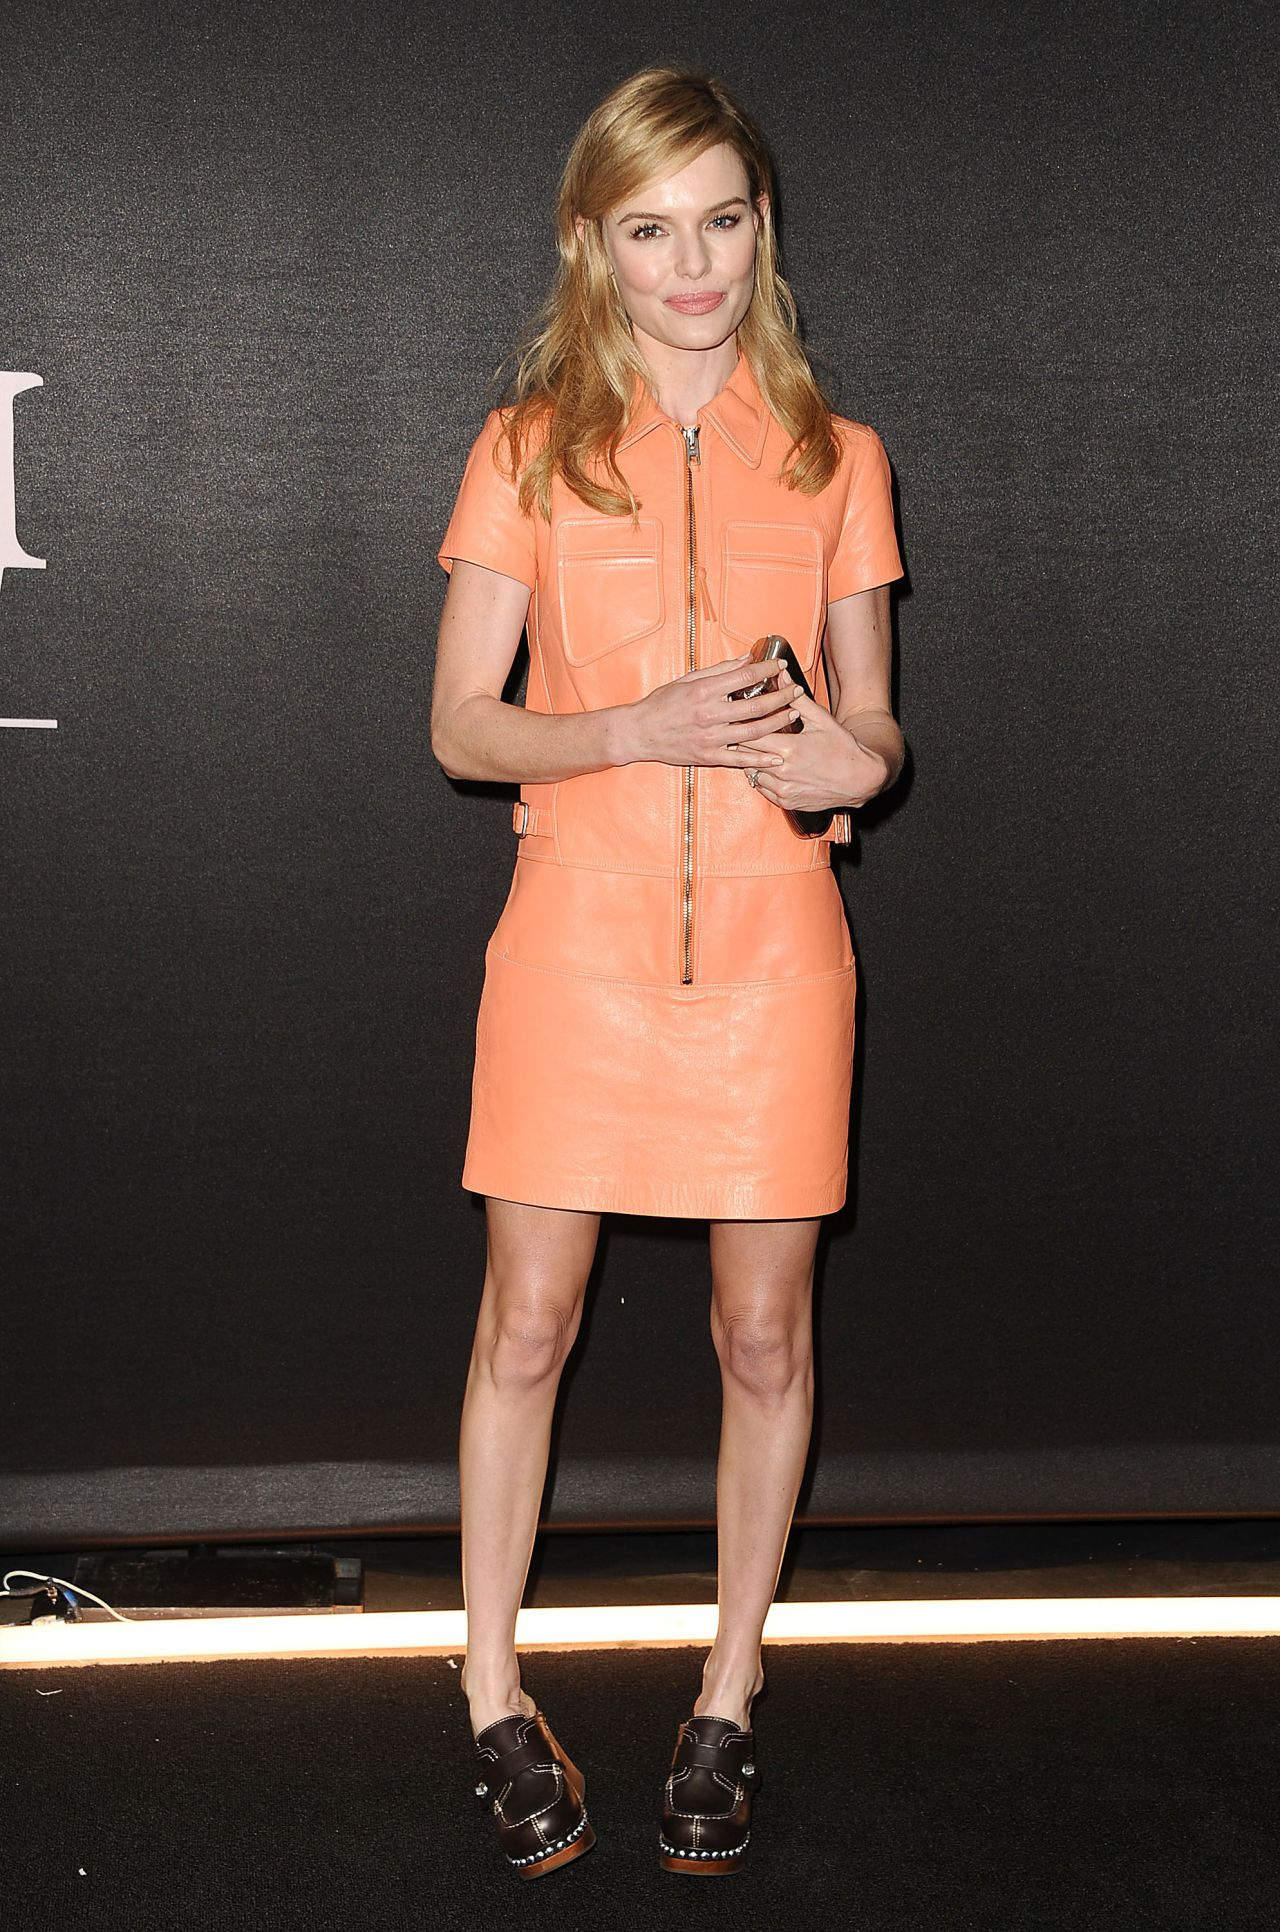 Kate Bosworth - 2015 Celebrity Photos - a Coach Rodeo ... Kate Bosworth